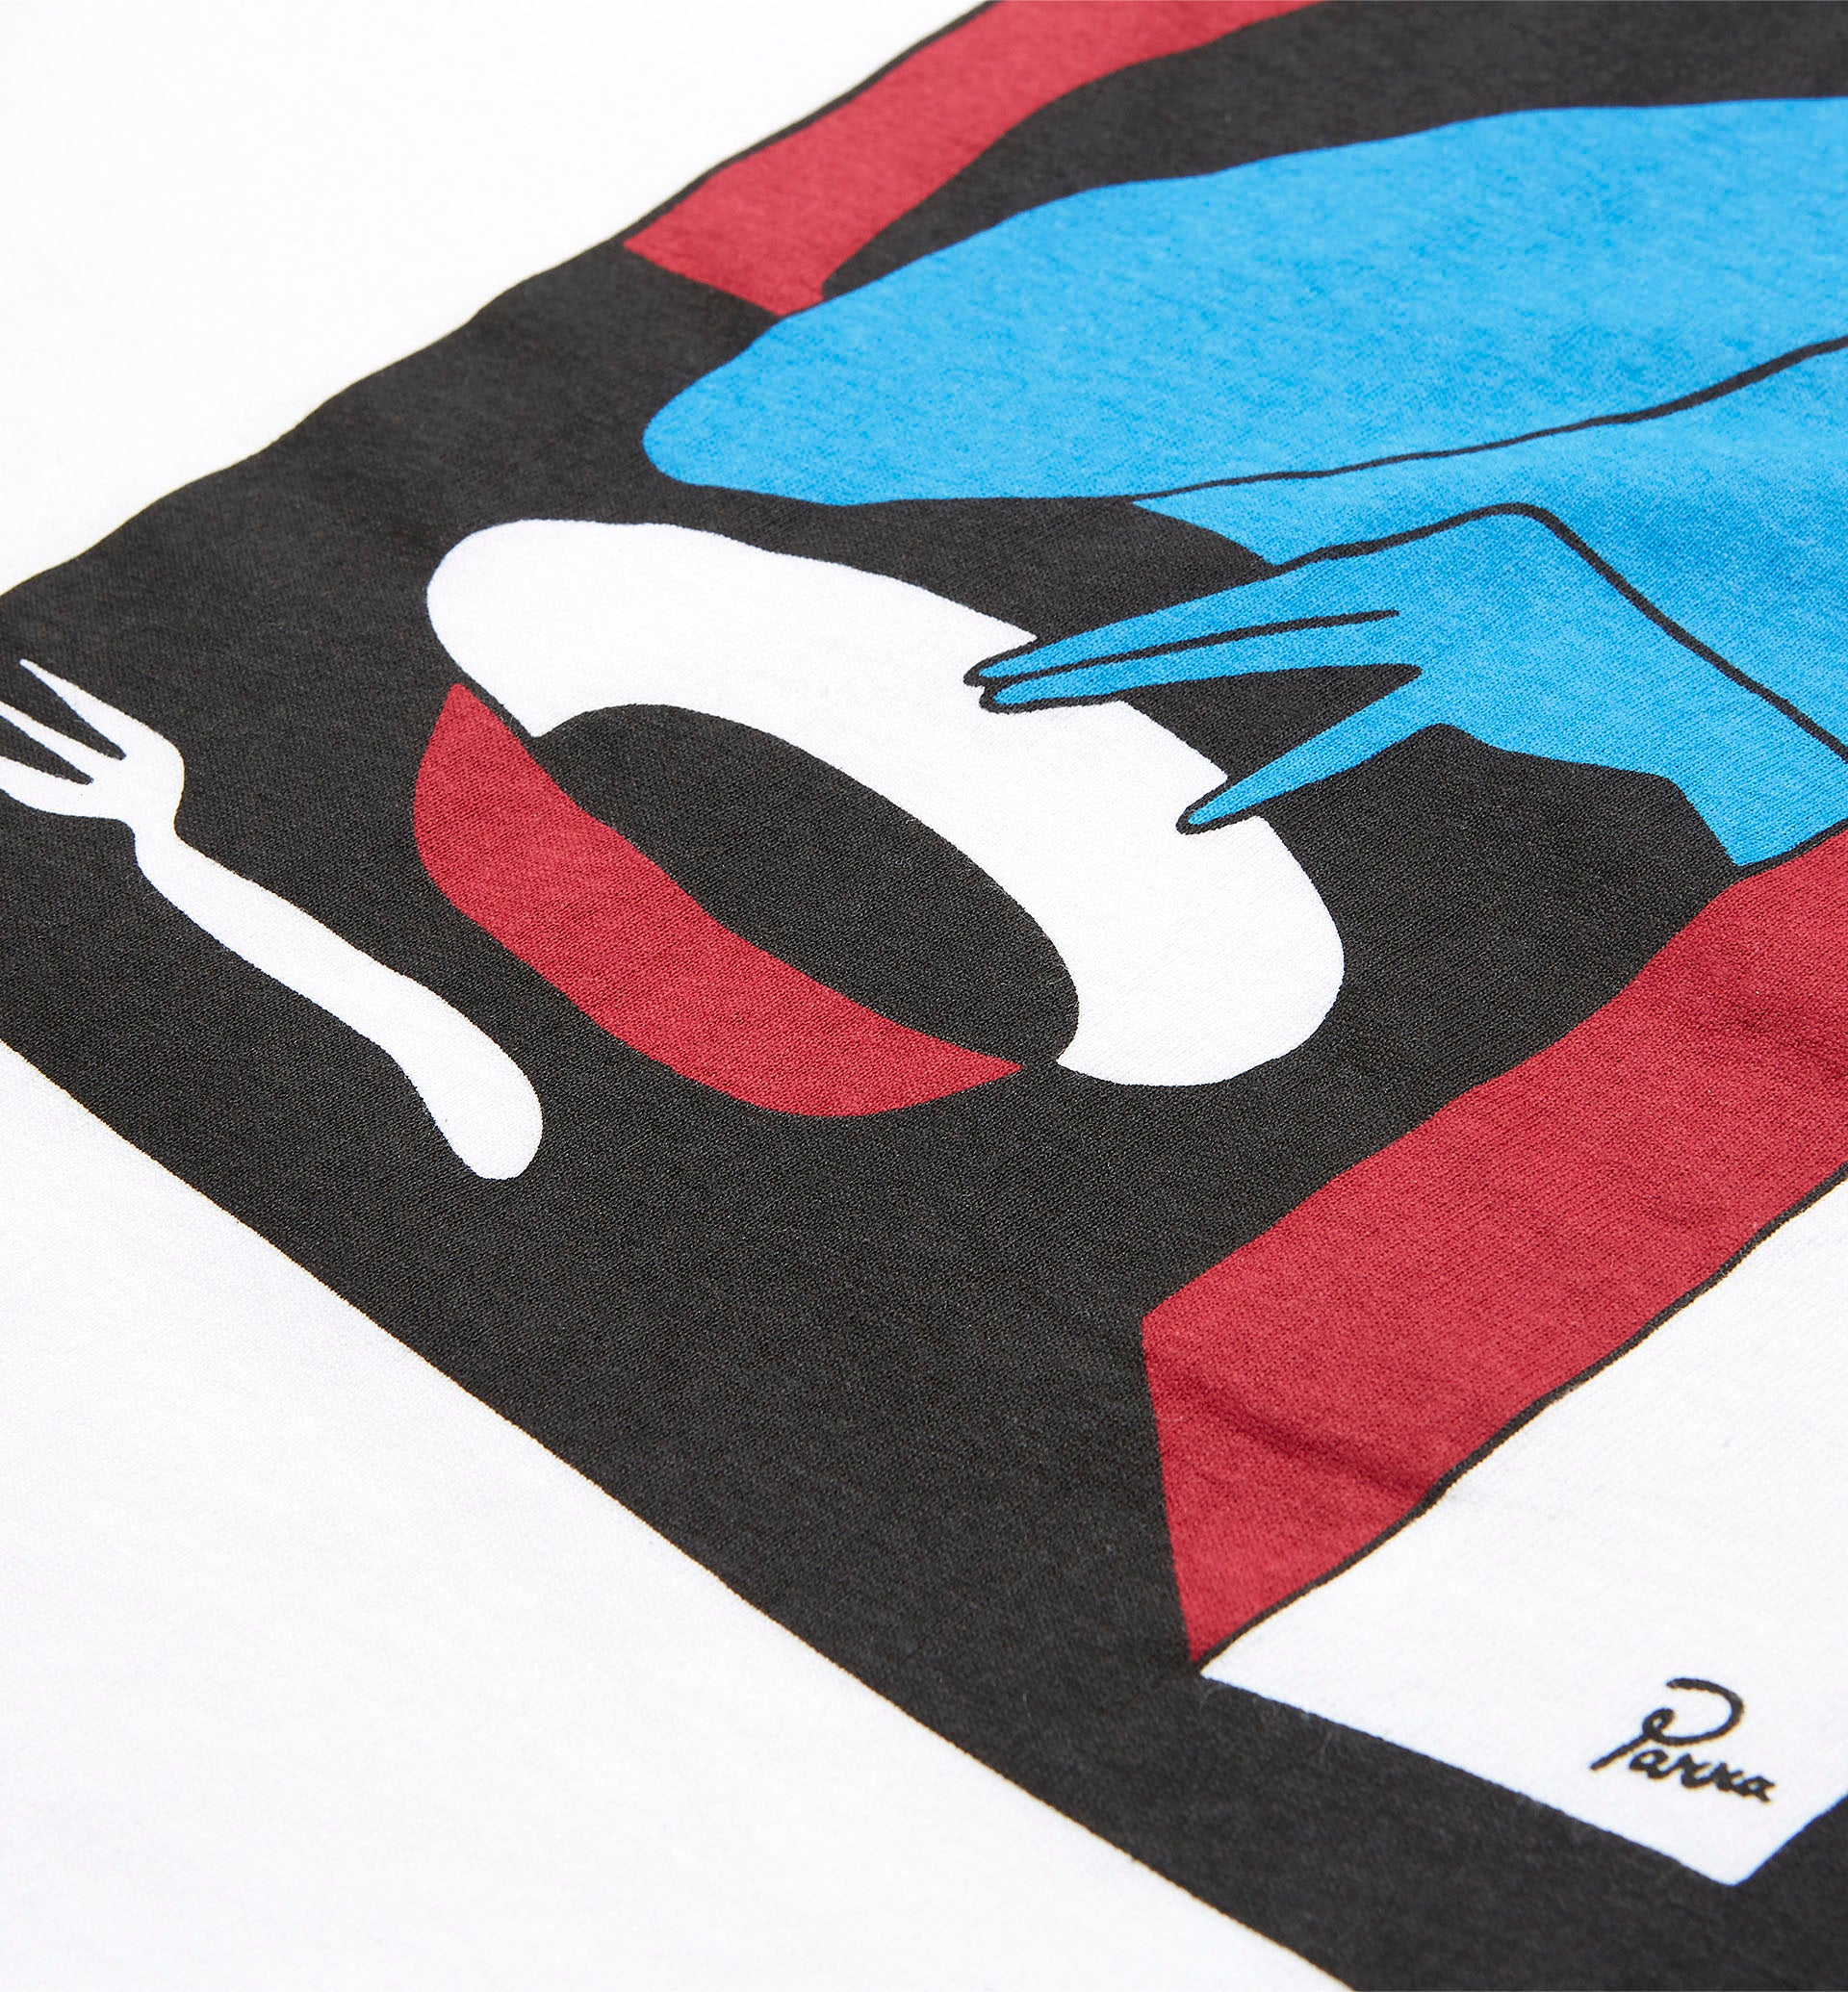 Parra - lost all will fast t-shirt